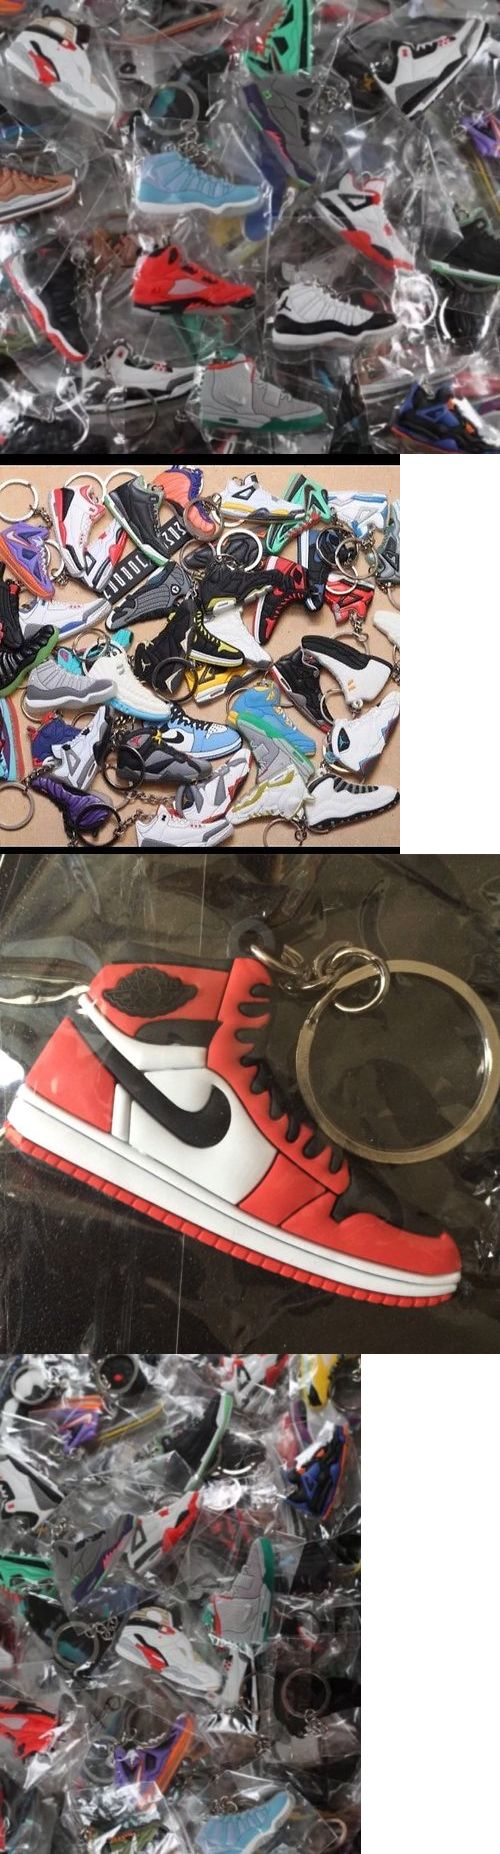 Key Chains Rings and Cases 52373: 500 Nike Air Jordan, Yeezy, Lebron, Misc. Shoe Keychains - Random Picks By Us! -> BUY IT NOW ONLY: $400 on eBay!